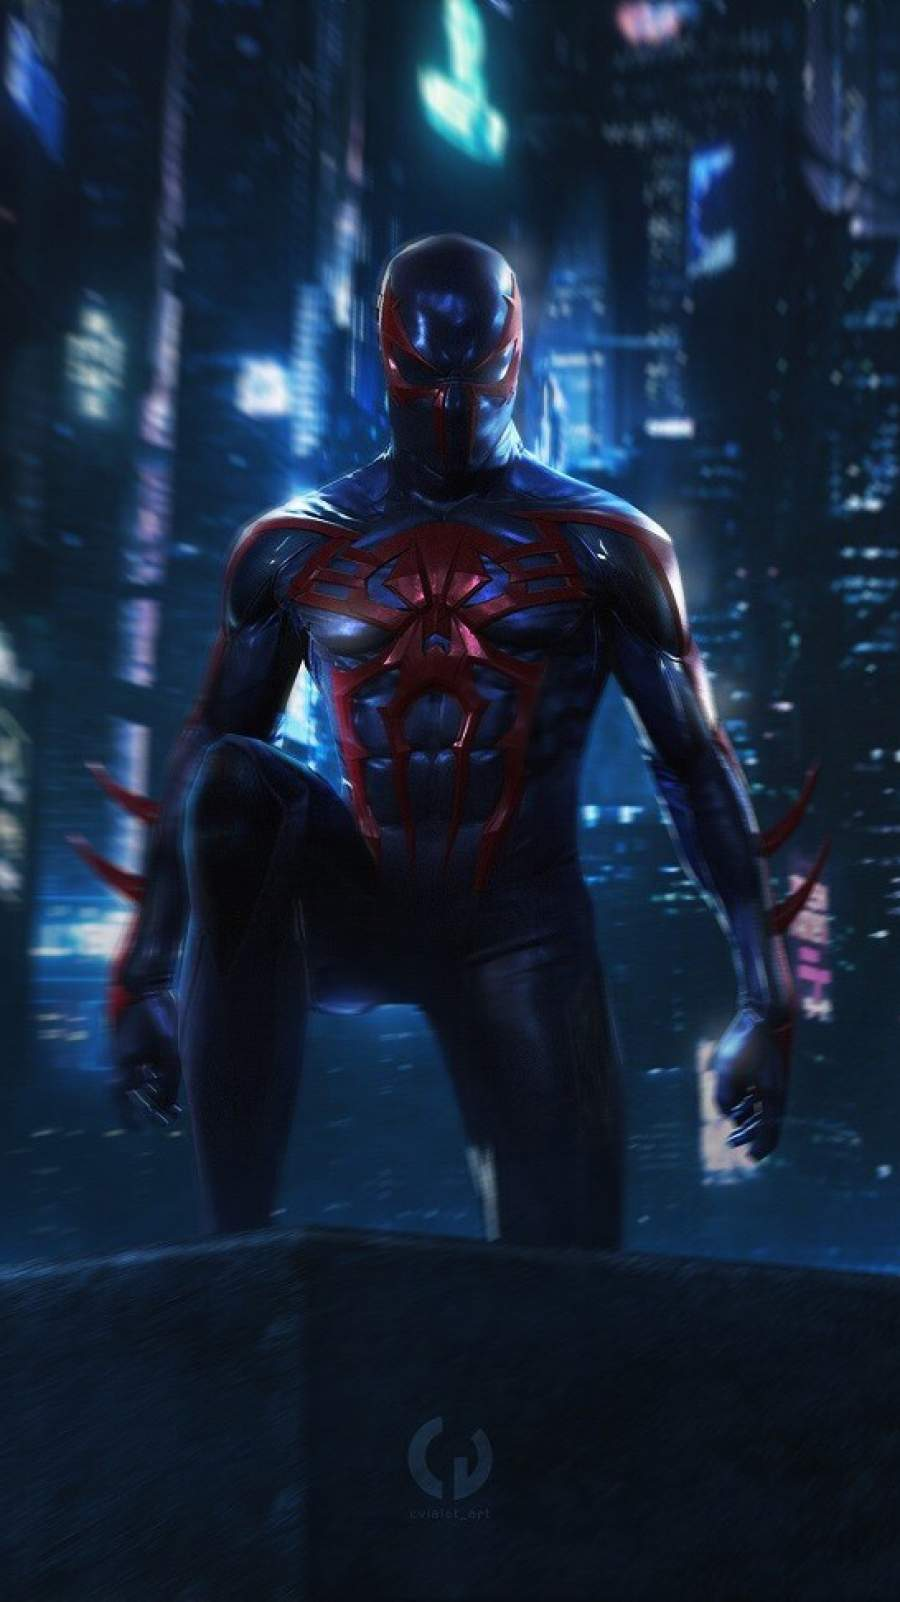 Spiderman Future iPhone Wallpaper